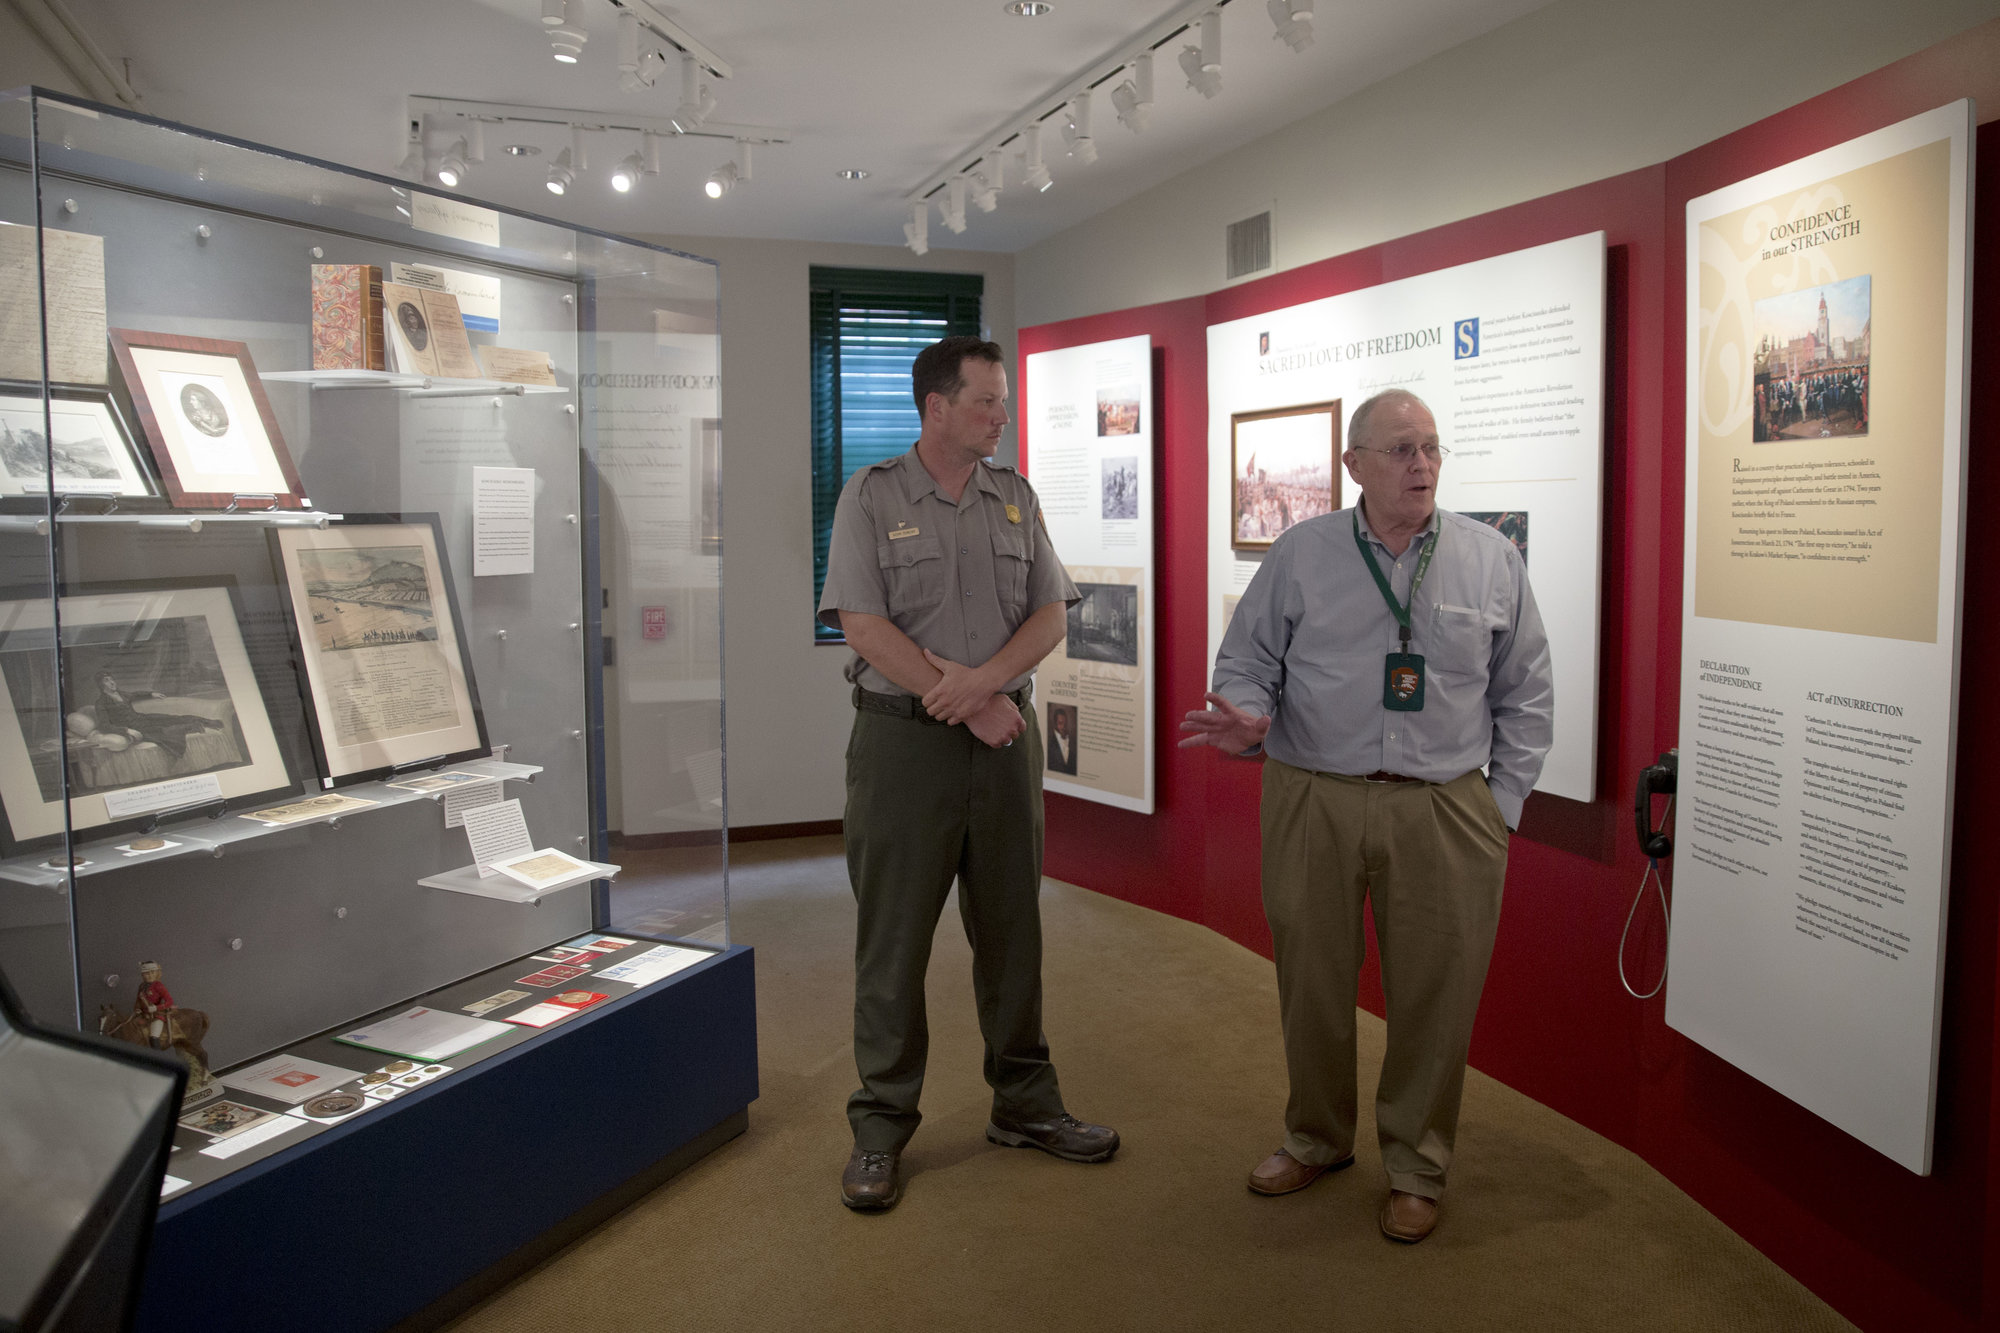 A park ranger discusses Kosciuszko's life with a visitor among the first floor interpretive exhibits.